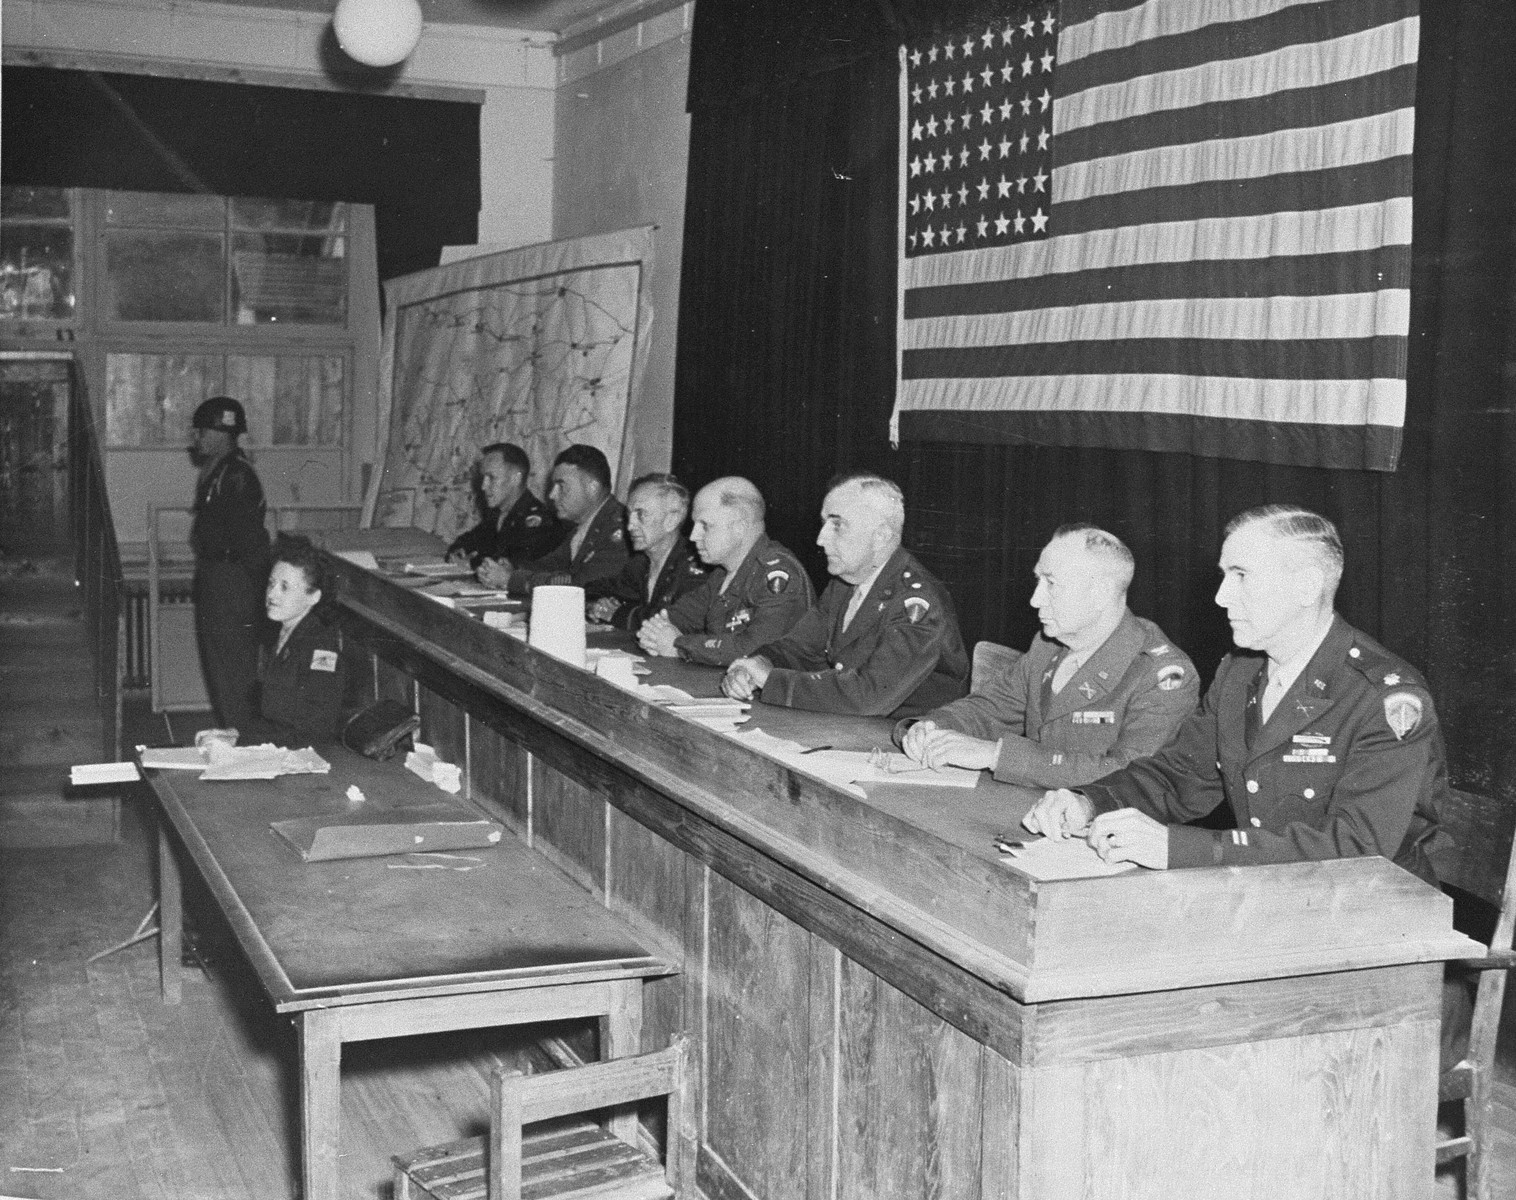 The judges comprising the American Military Tribunal which presided over the Dora-Mittelbau war crimes trial.  The officers' names, from left to right, are: Major W. M. Vanderburgh, Lt. Colonel L. S. Tracy, Colonel Joseph W. Benson, Colonel Frank Silliamn, III, Lt. Colonel David H. Thomas, Colonel Claude O. Bunch, and Lt. Colonel Roy J. Herte.